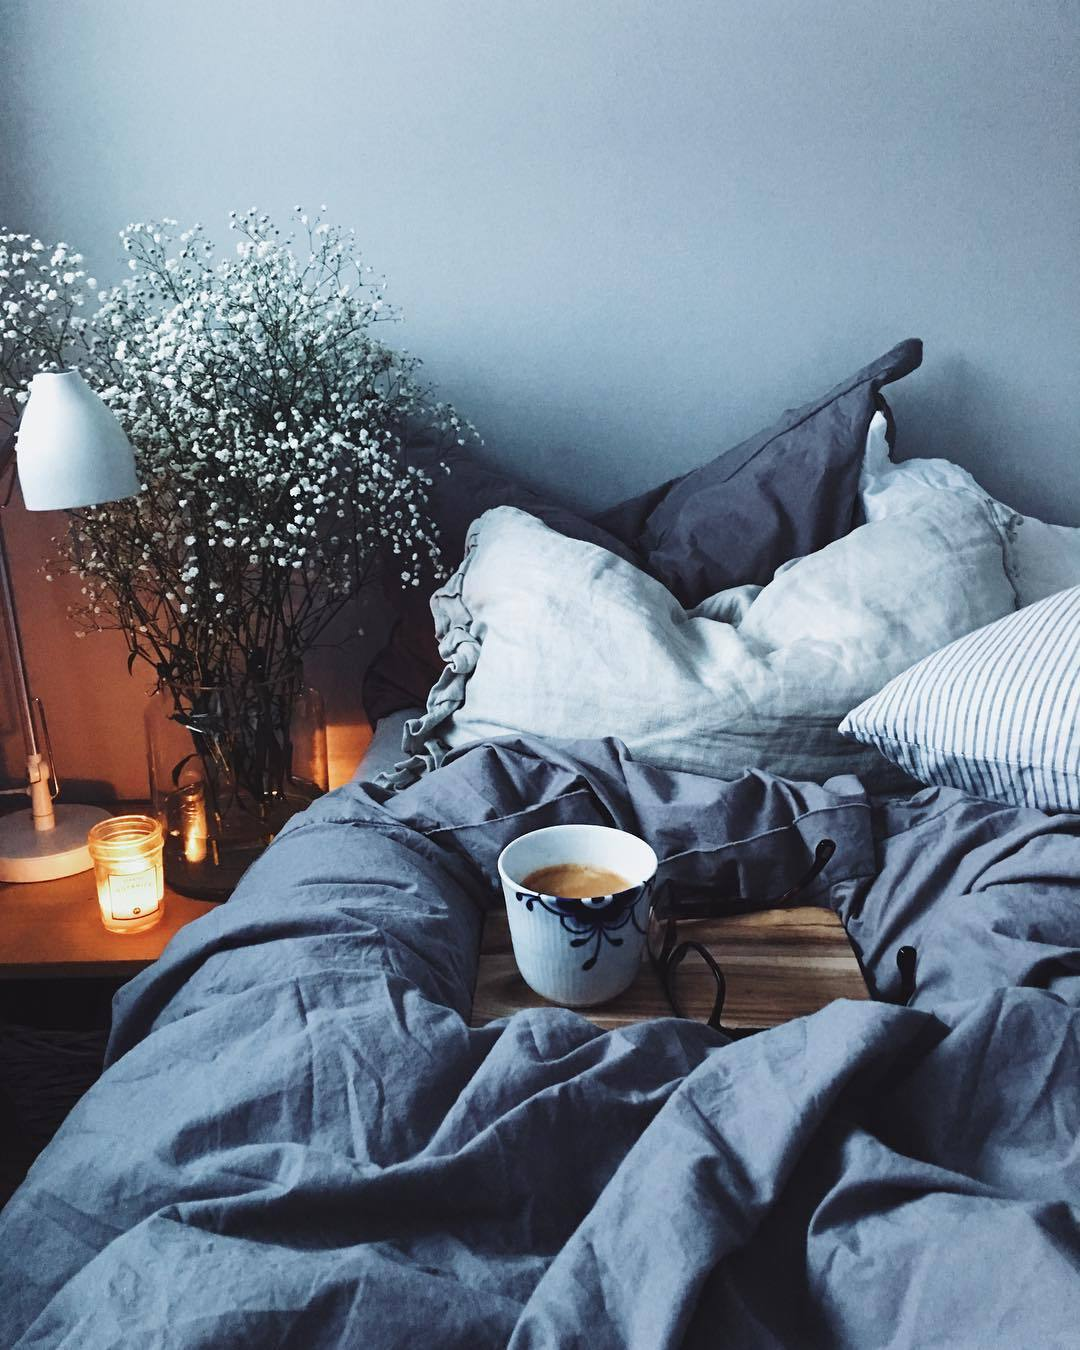 cosy winter bed with cup of tea. Blue bedsheets